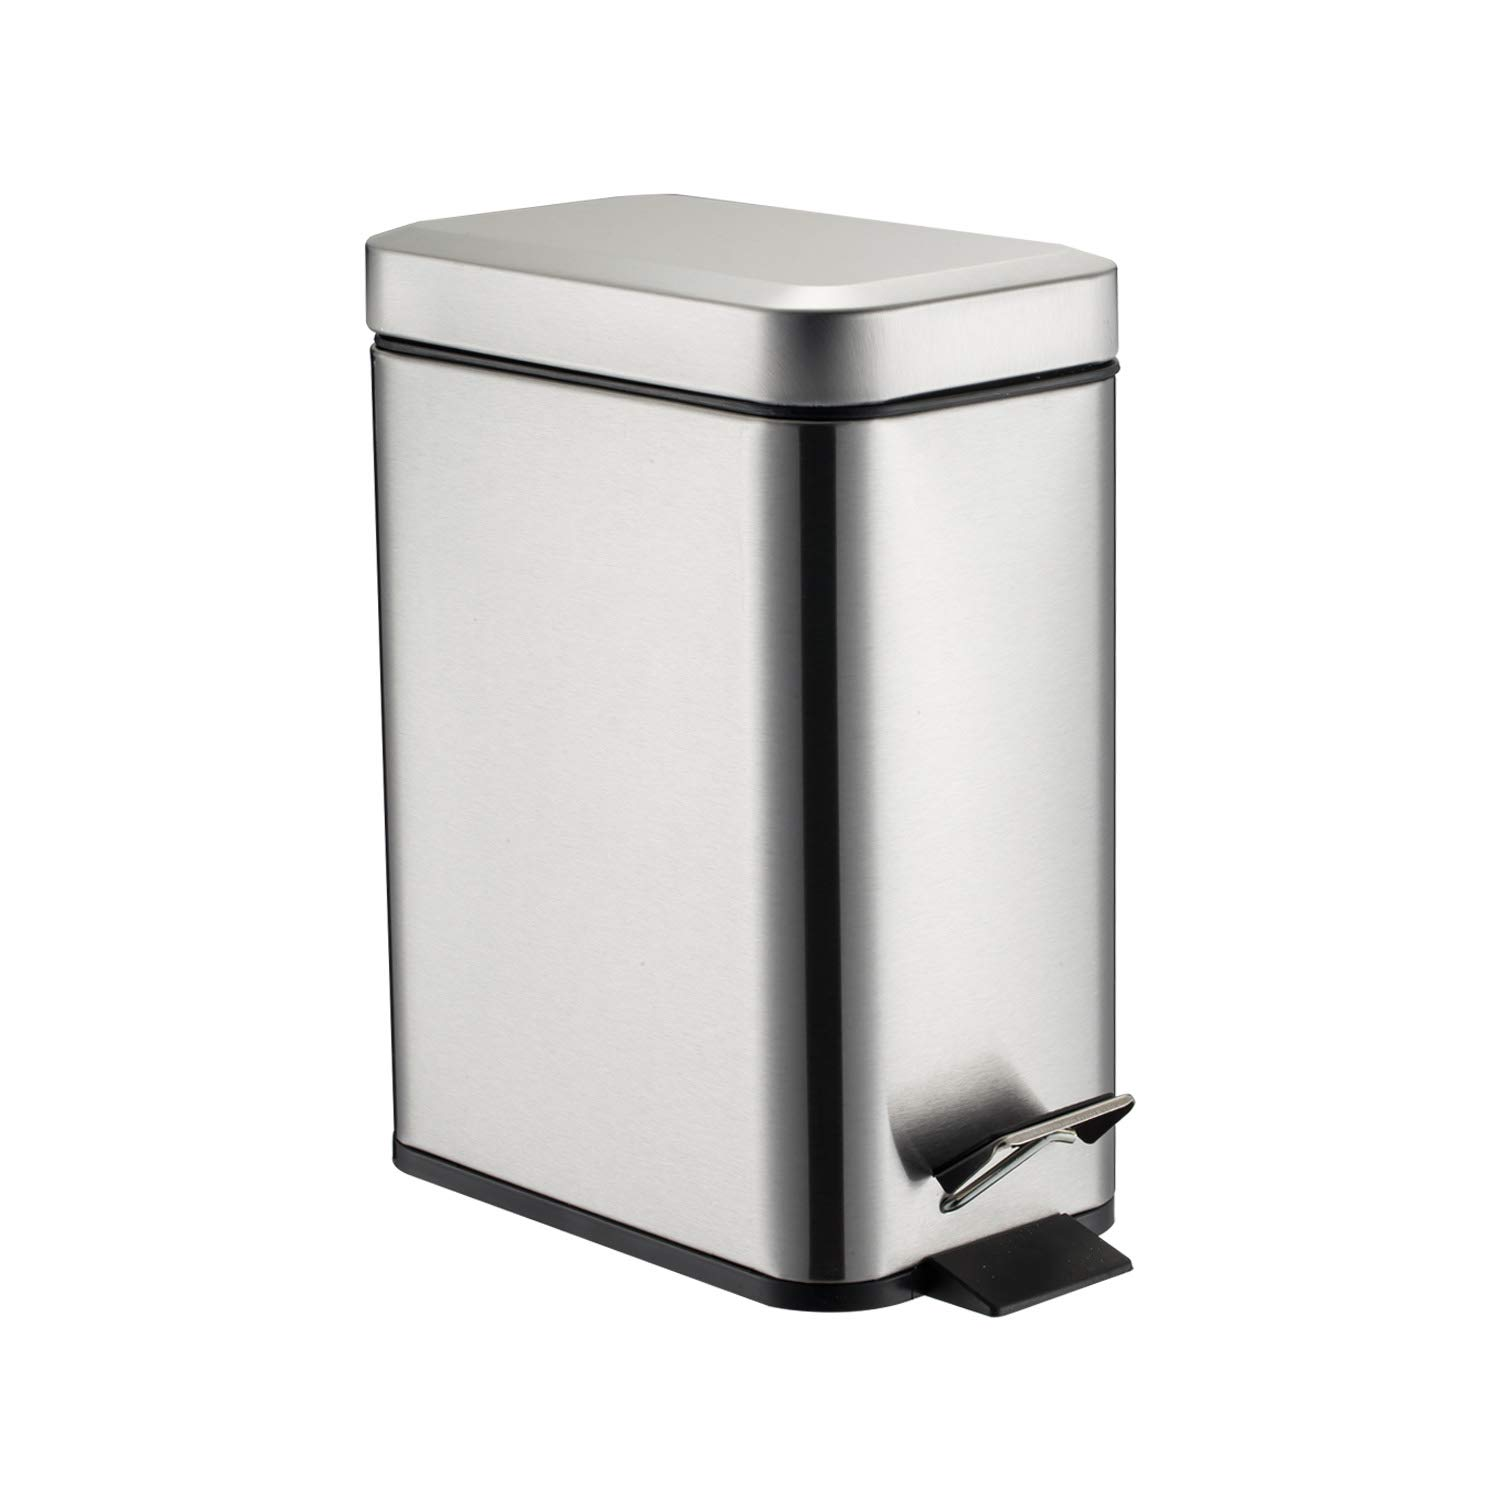 GiniHome Office Bin, Small Kitchen & Bathroom, Waste Basket-Soft Close, Waterproof and Easy to Clean-5 Liter/1.3 Gallon (Sliver) Cuboid Step Trash Can with Lids Waste Bin